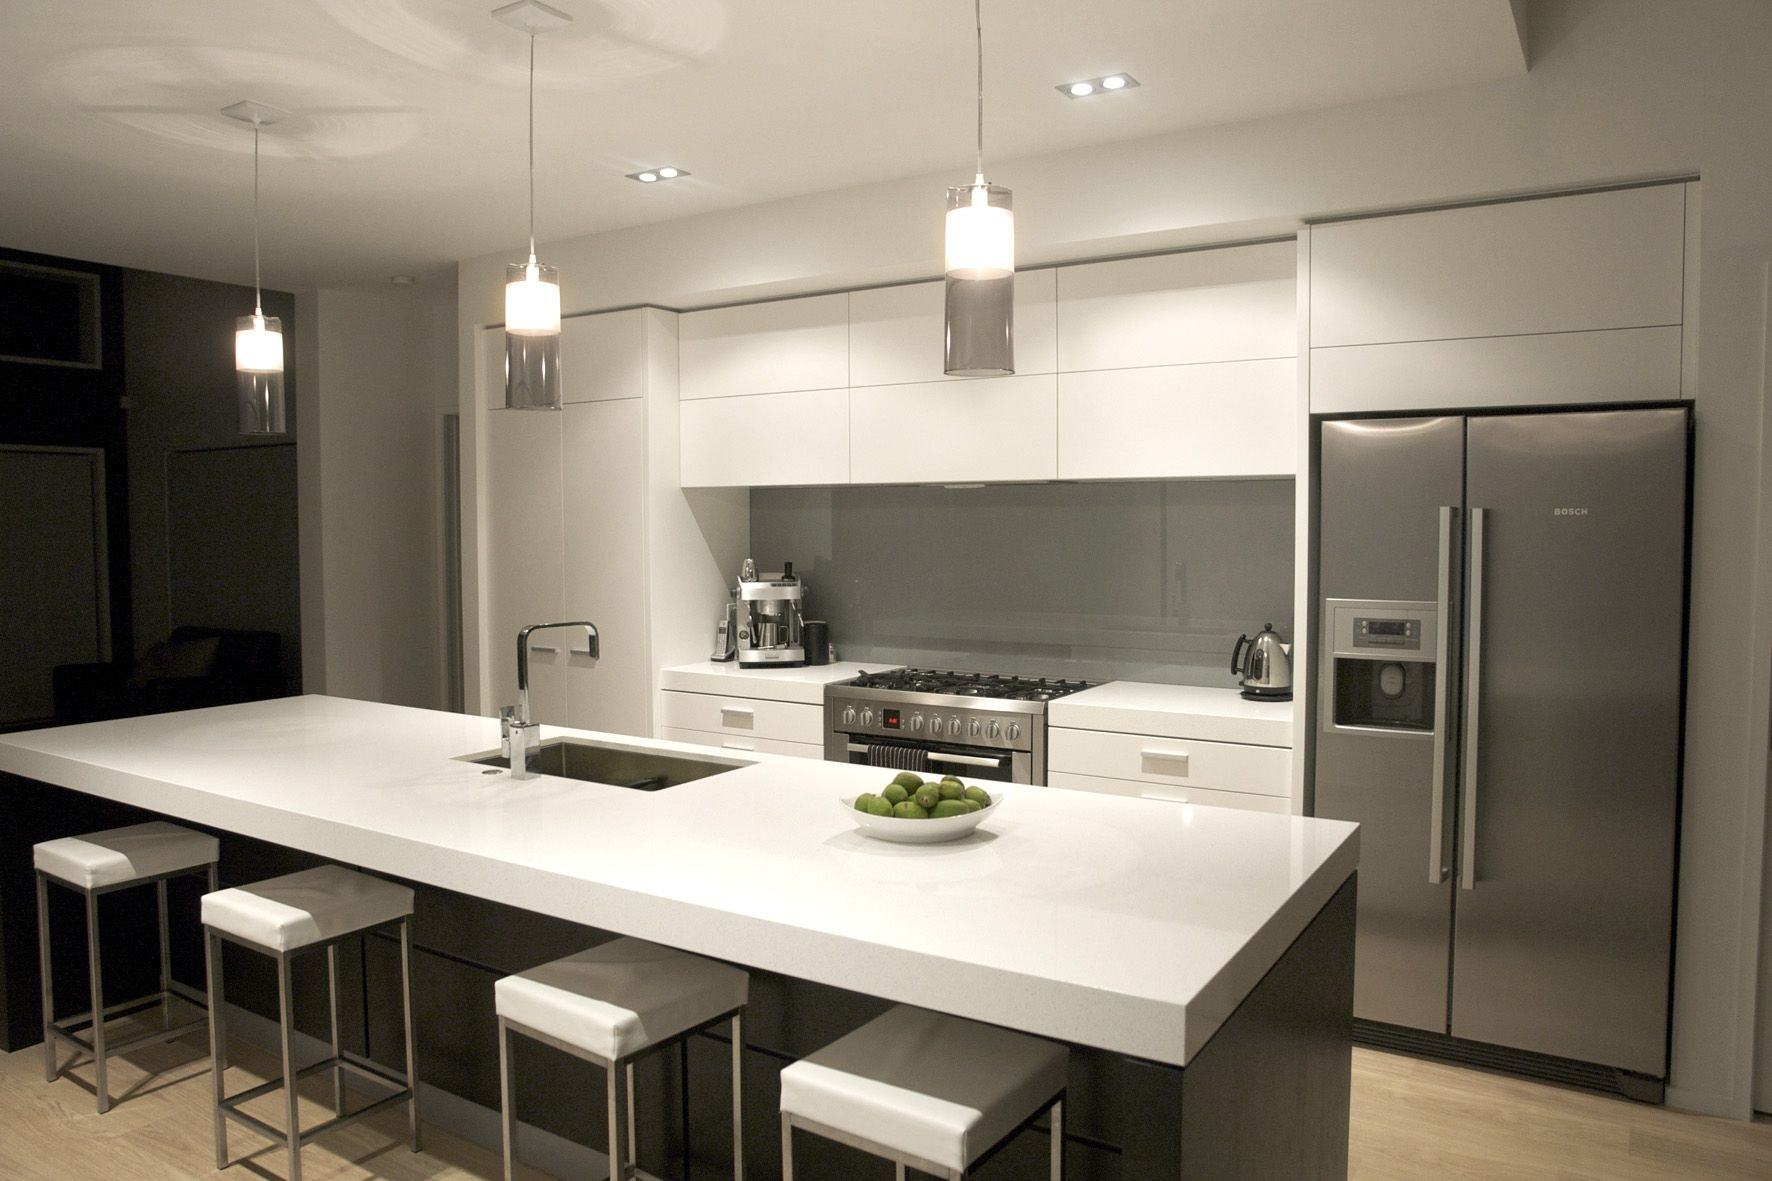 White Kitchen Nz modern kitchen designs nz - google search | kitchen | pinterest